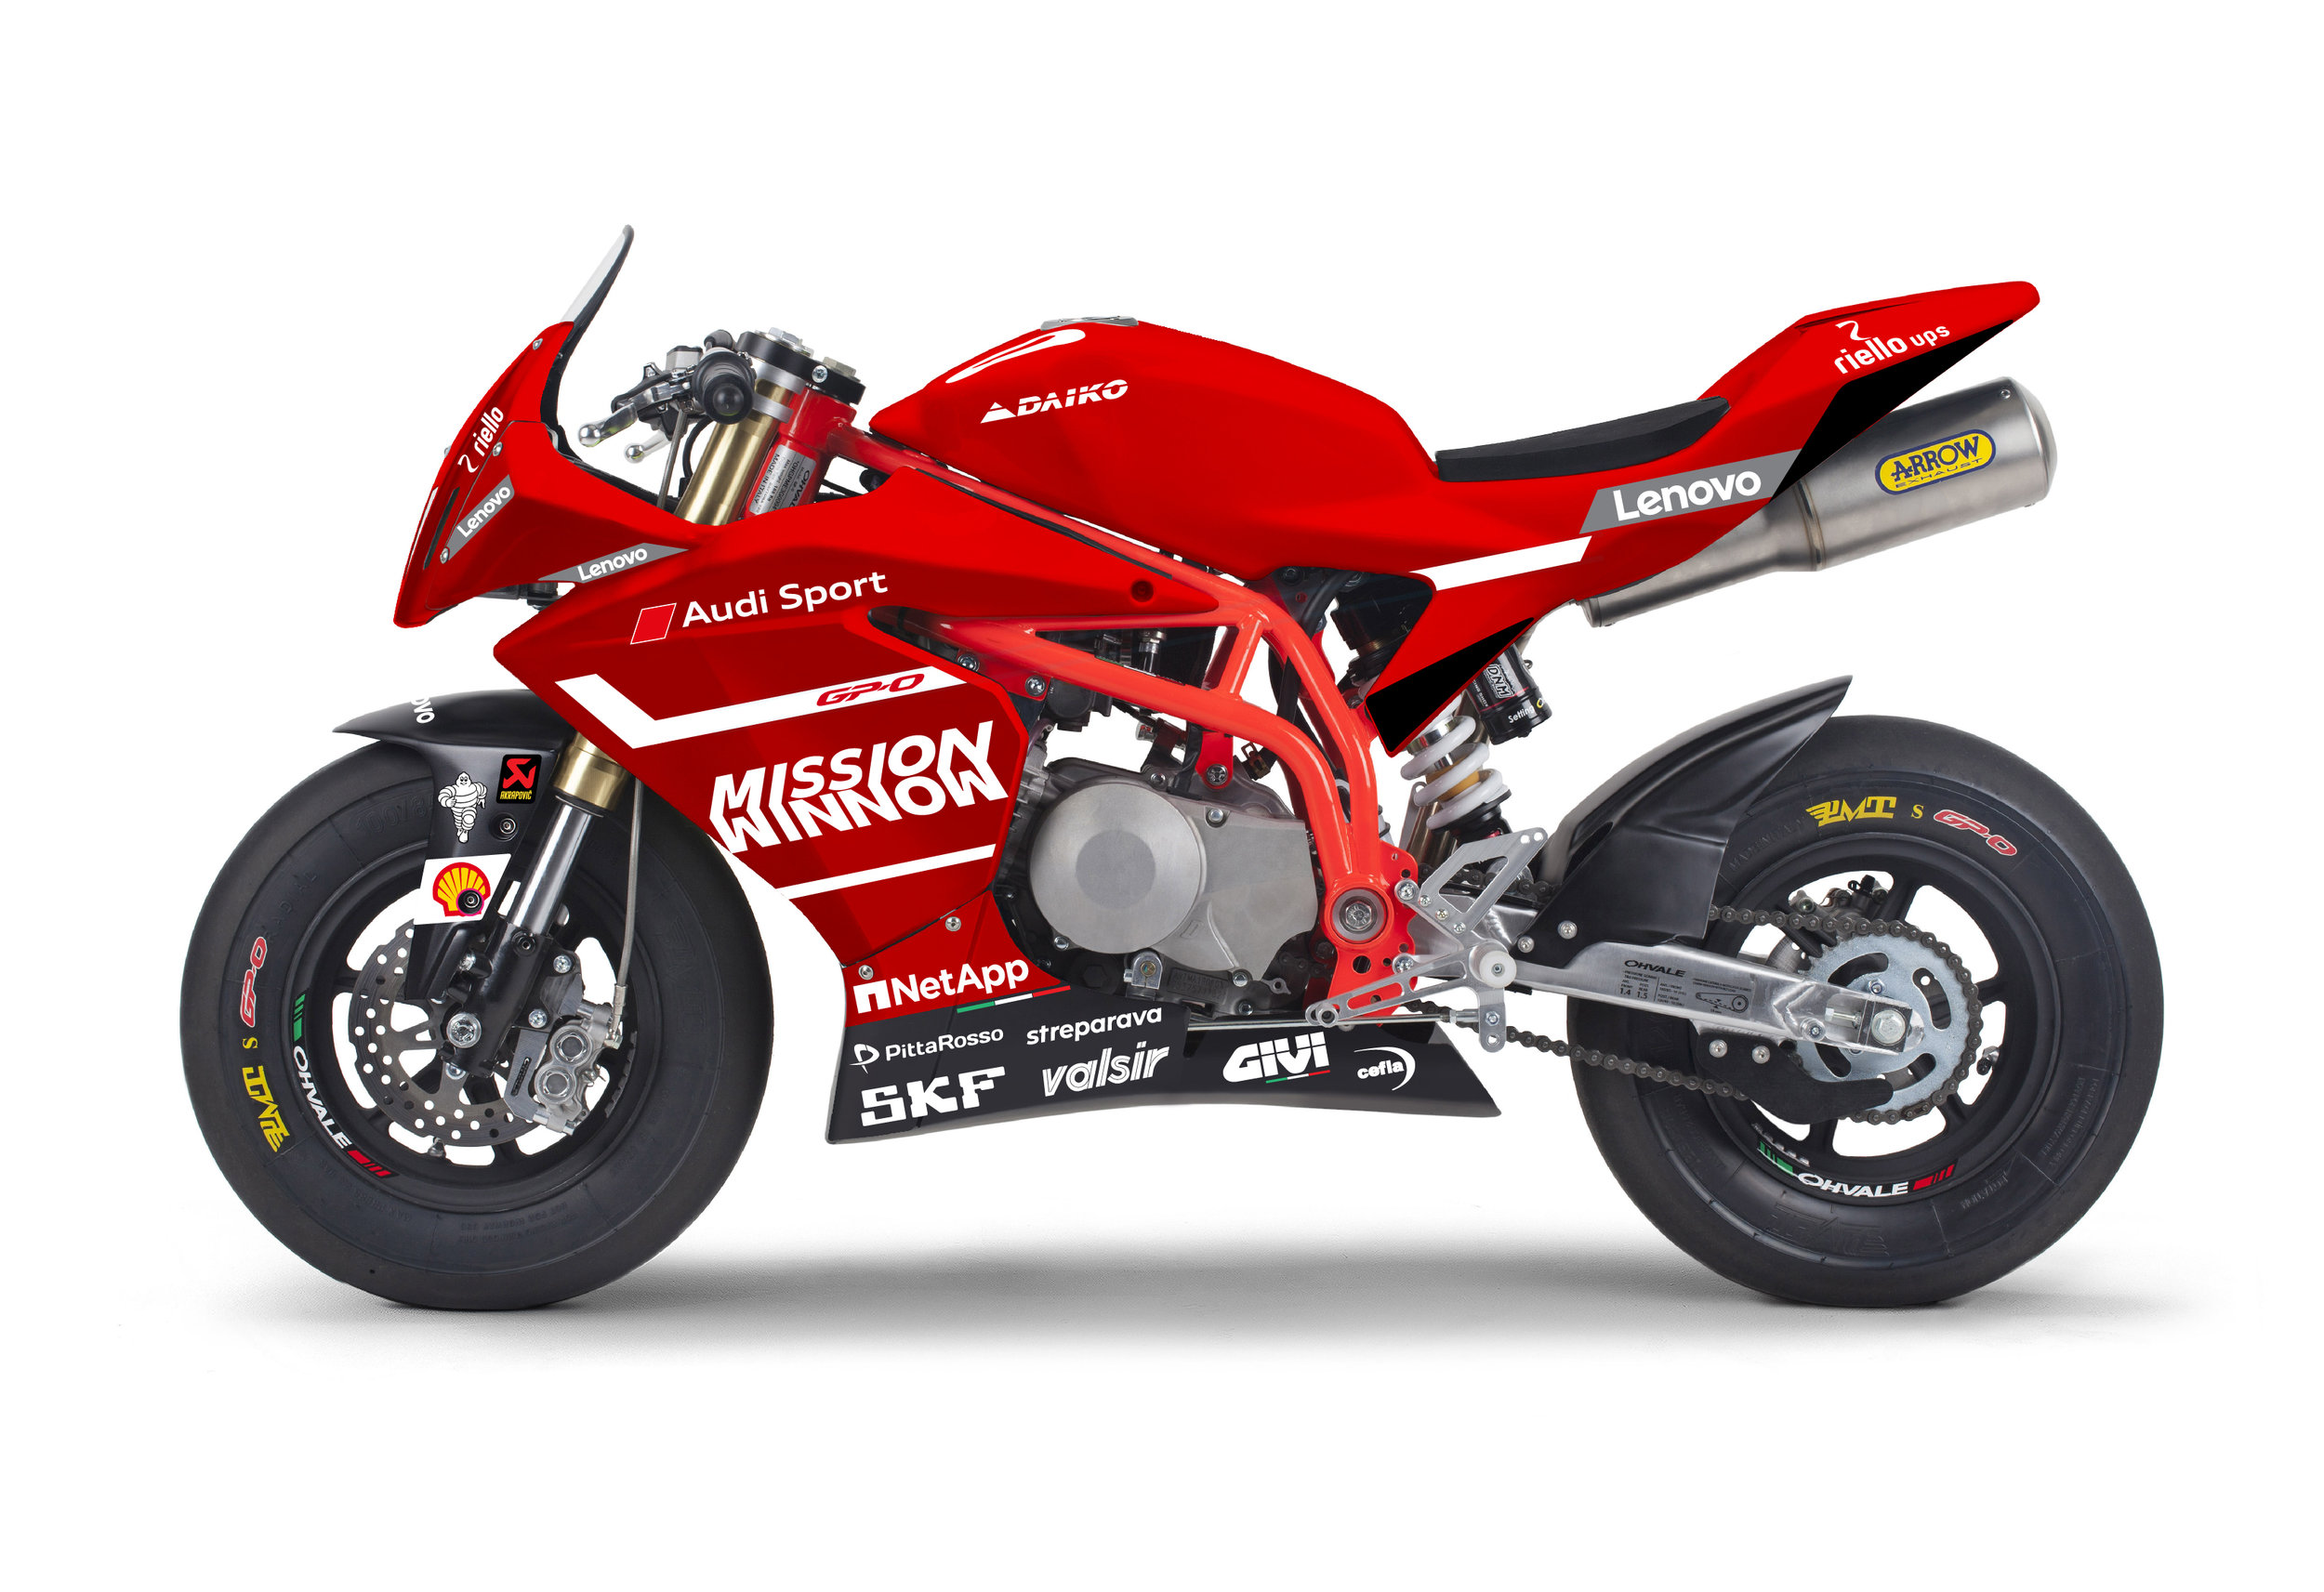 Mission Winnow Ducati 2019